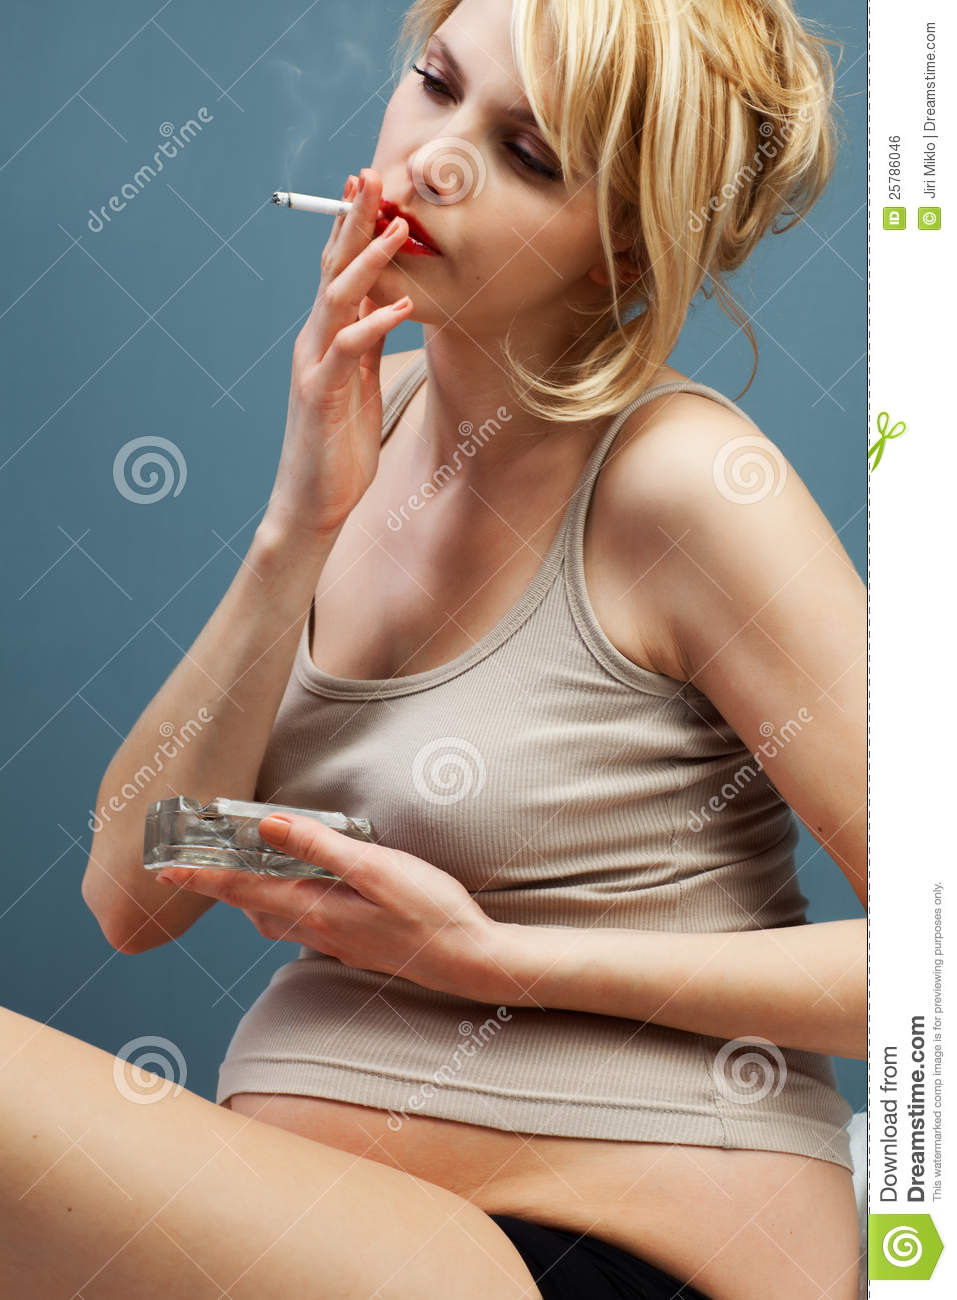 http://thumbs.dreamstime.com/z/pretty-pregnant-cigarette-ashtray-25786046.jpg